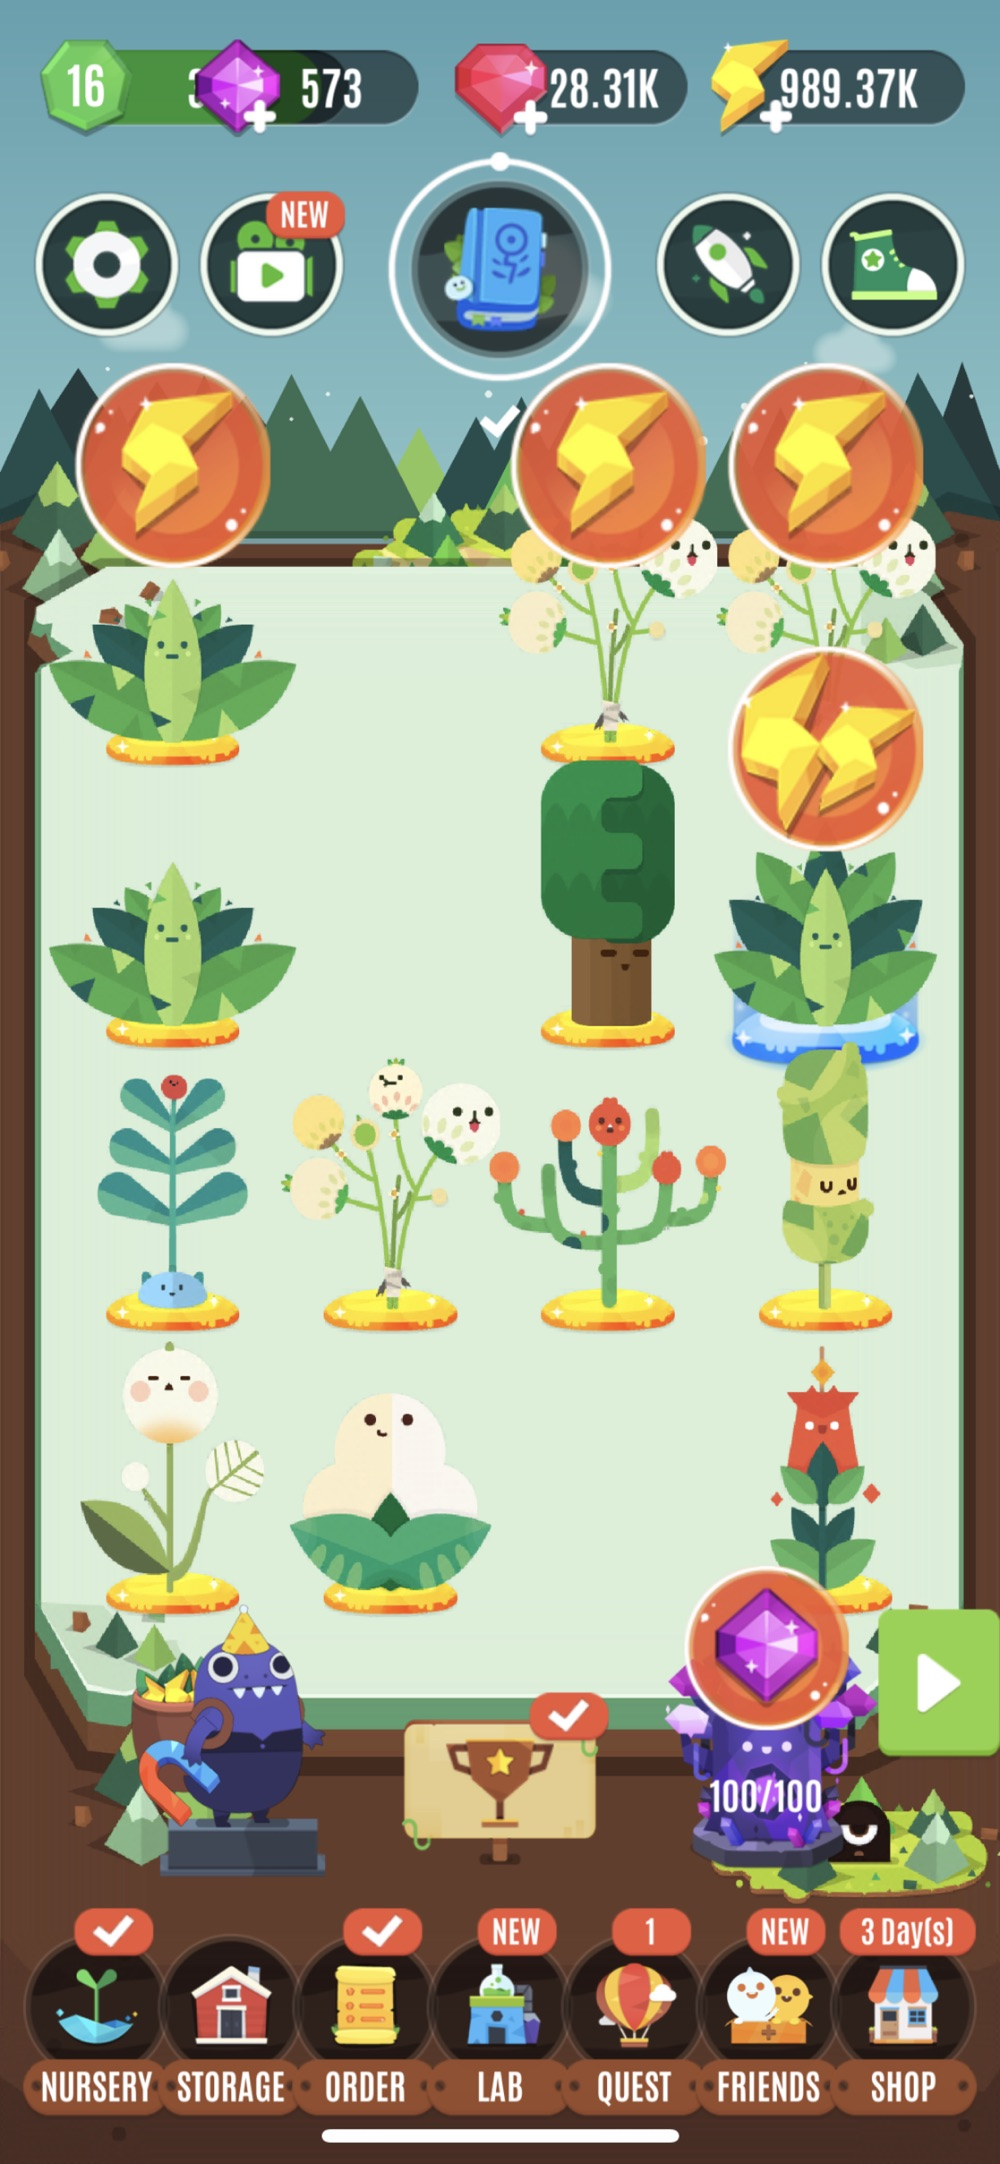 Pocket Plants – Merge Games Cheat Codes